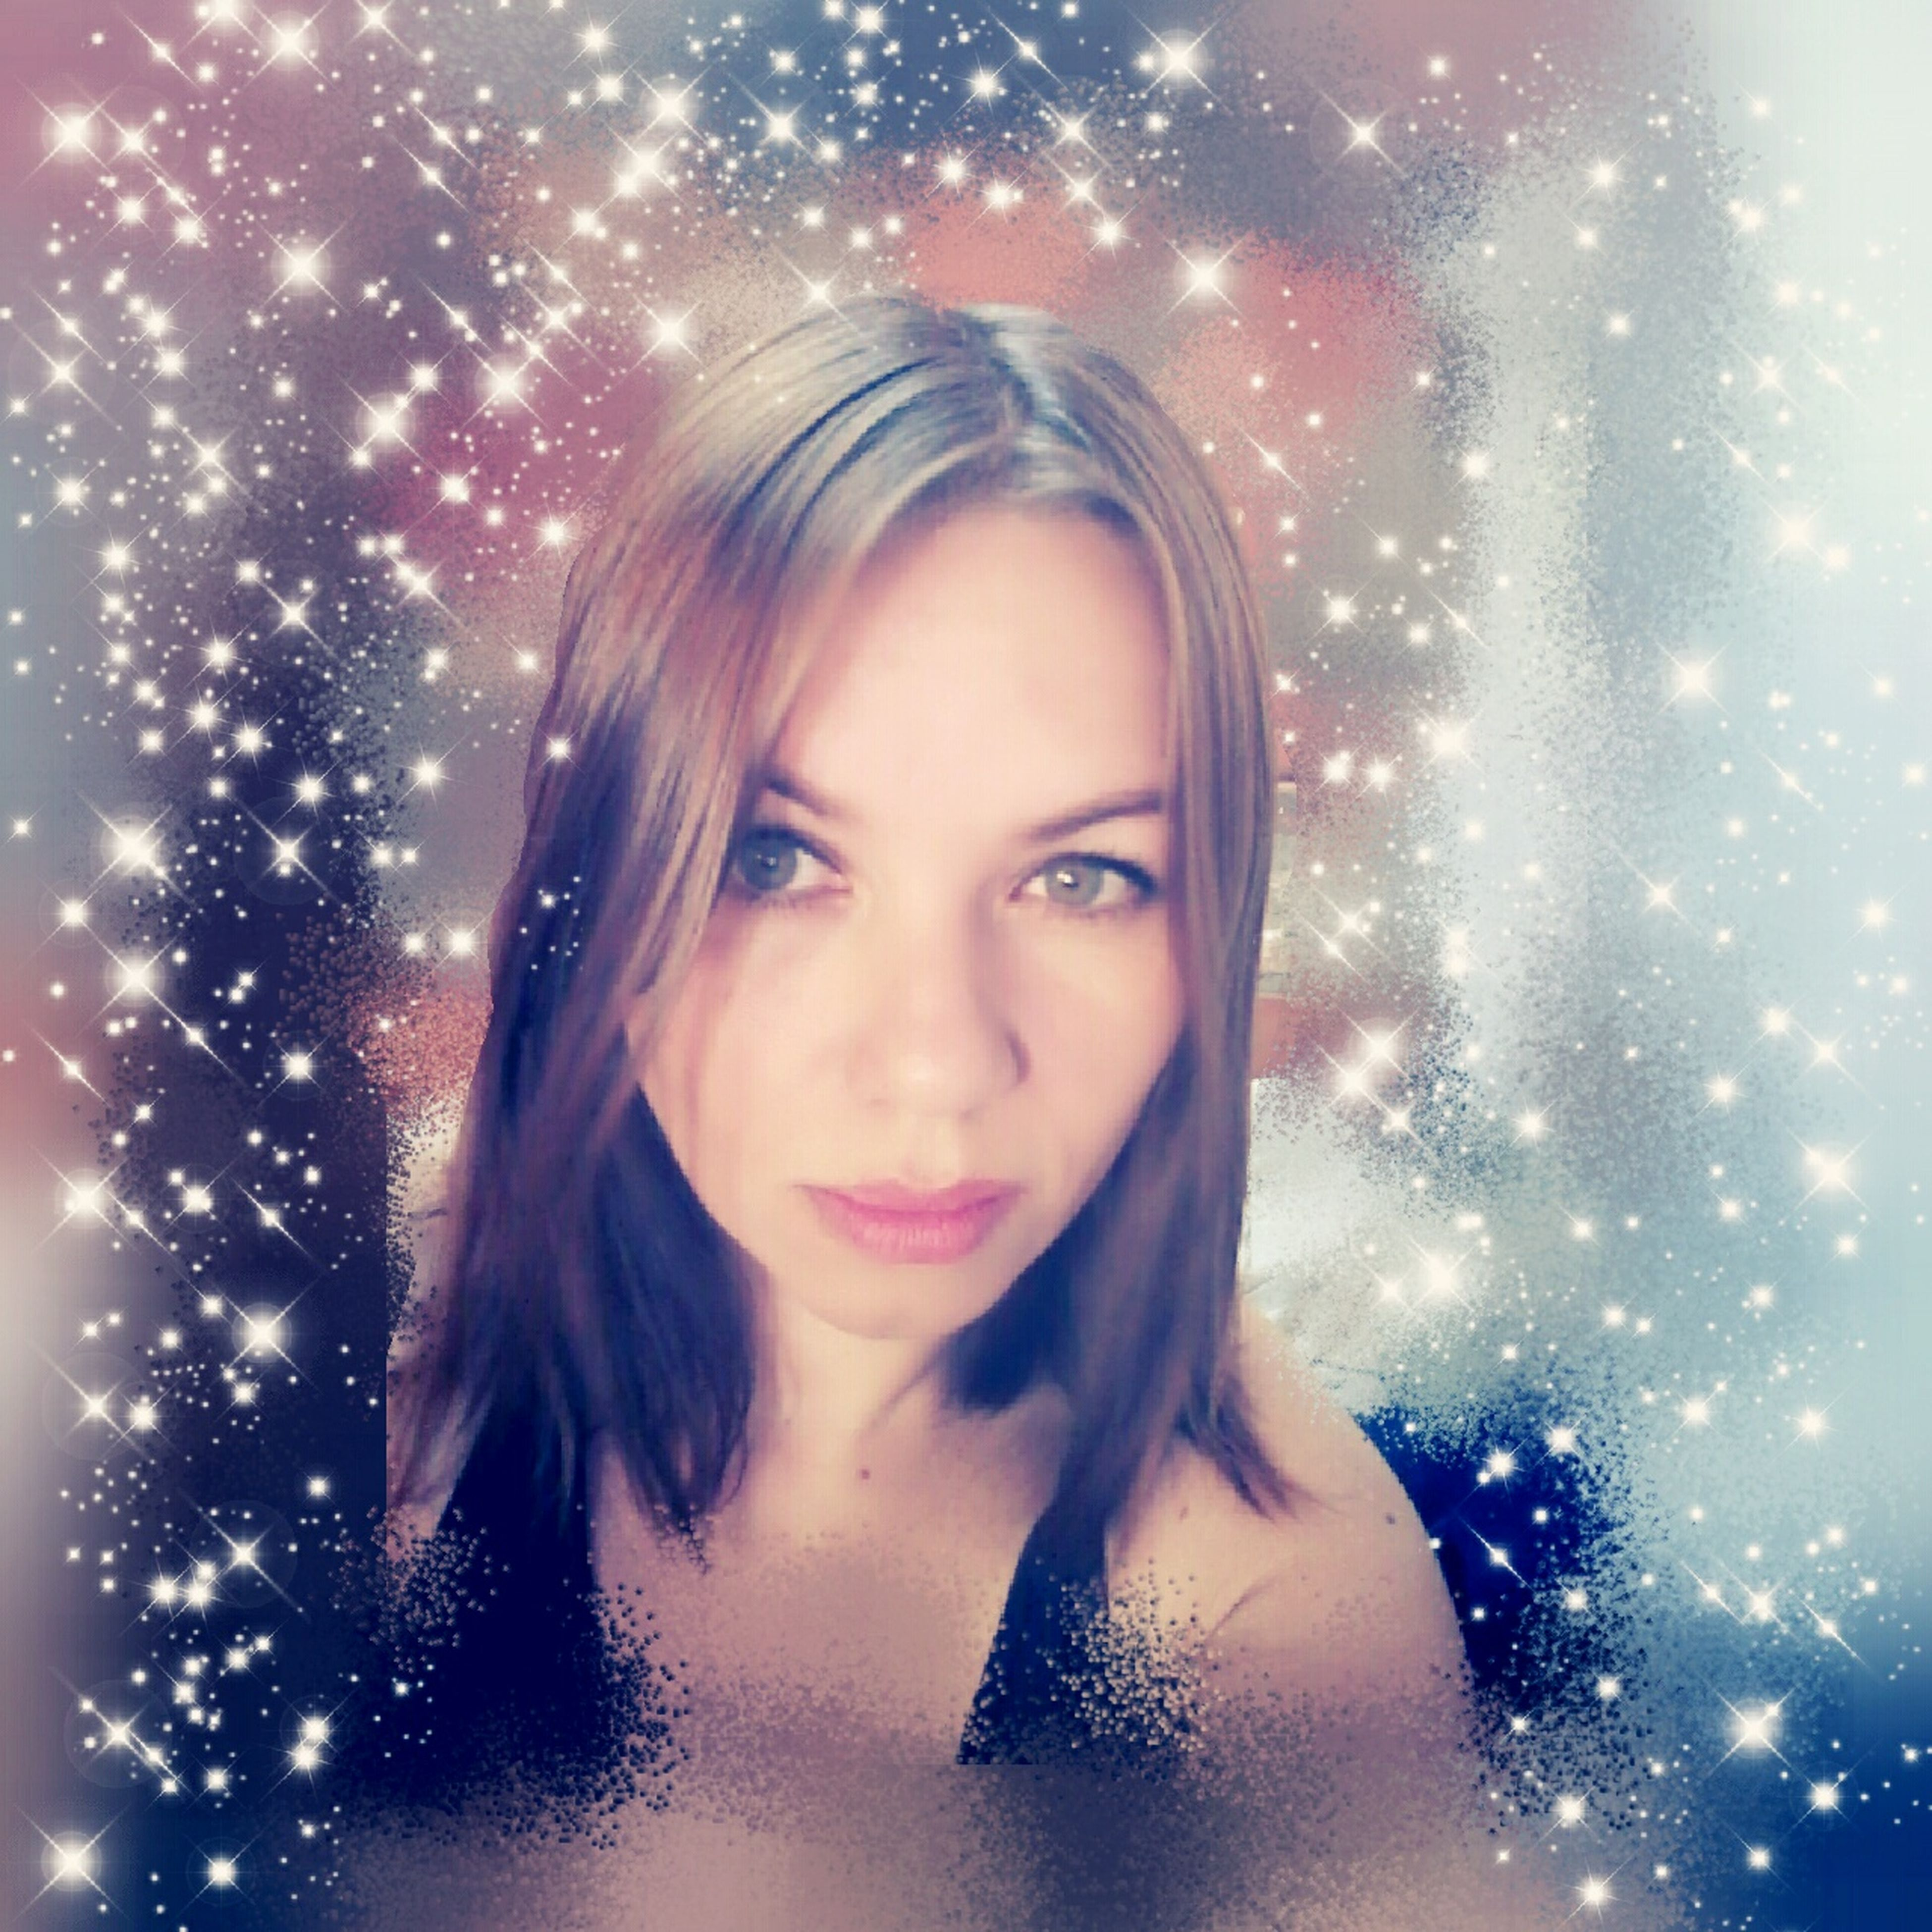 portrait, looking at camera, beautiful woman, one person, studio shot, young adult, headshot, front view, blue eyes, beauty, smiling, blond hair, snowflake, glitter, snowing, beautiful people, snow, close-up, happiness, christmas, real people, night, cold temperature, cheerful, indoors, young women, adult, people, adults only